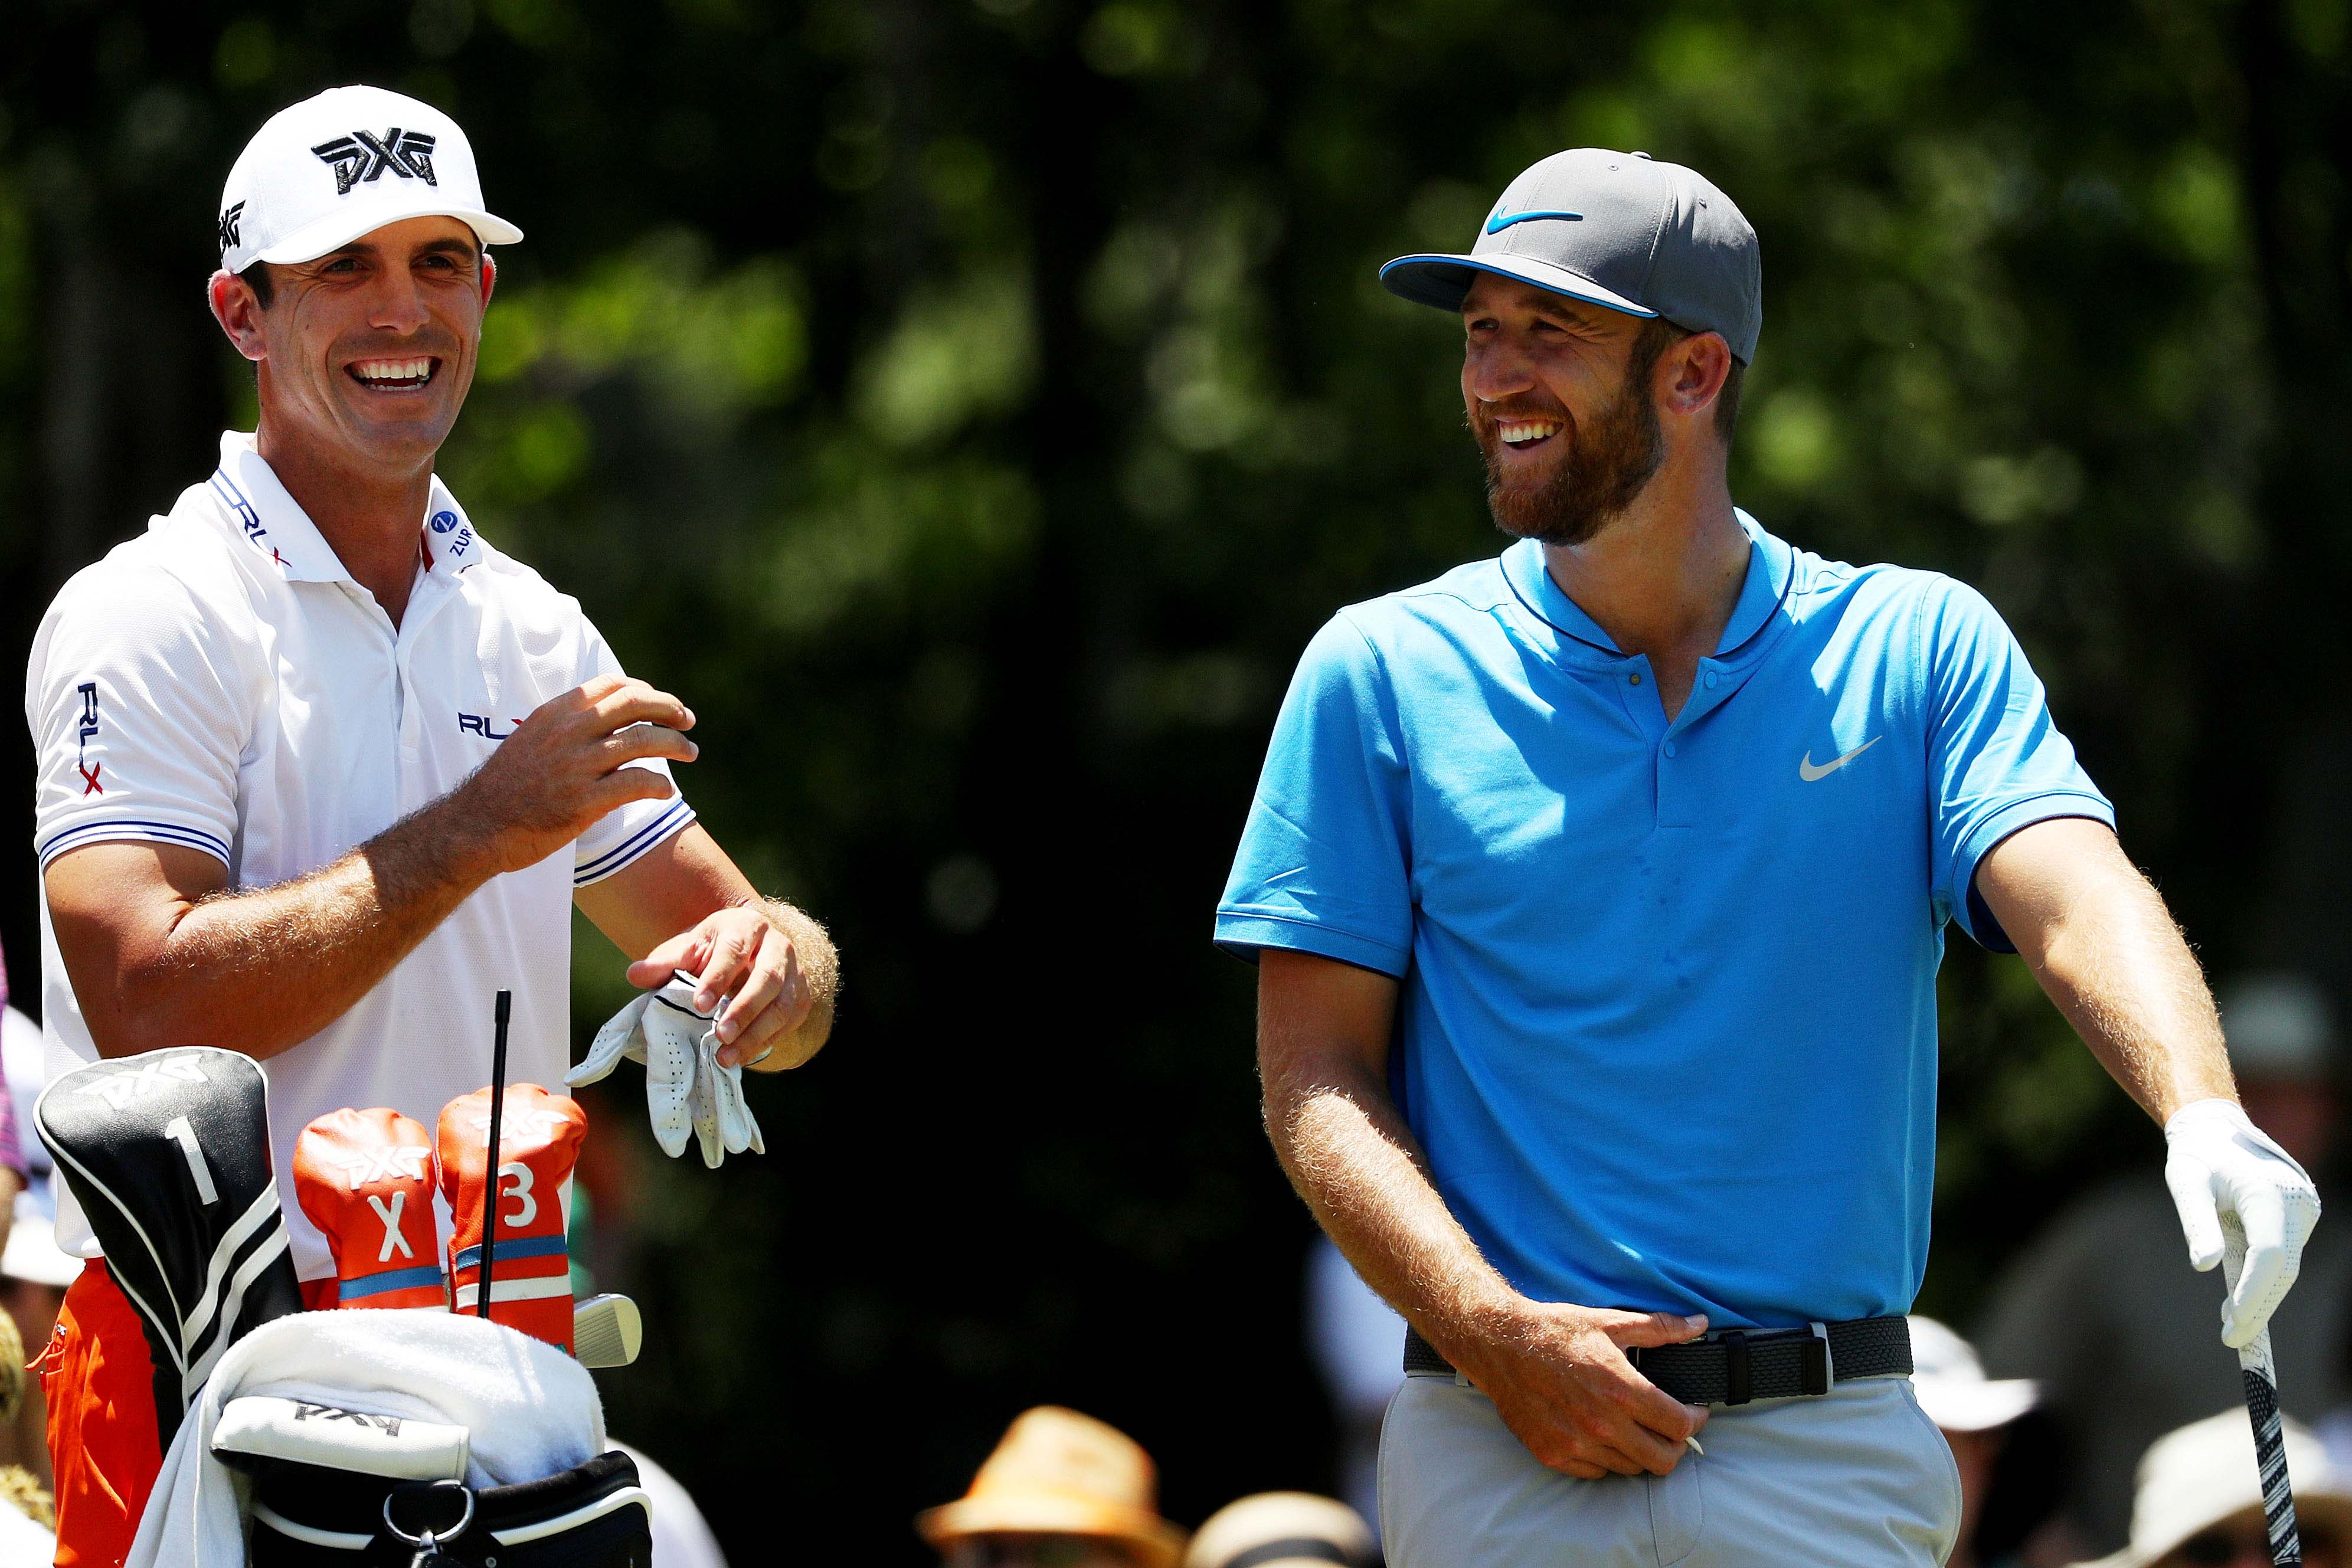 Billy Horschel and Kevin Chappell